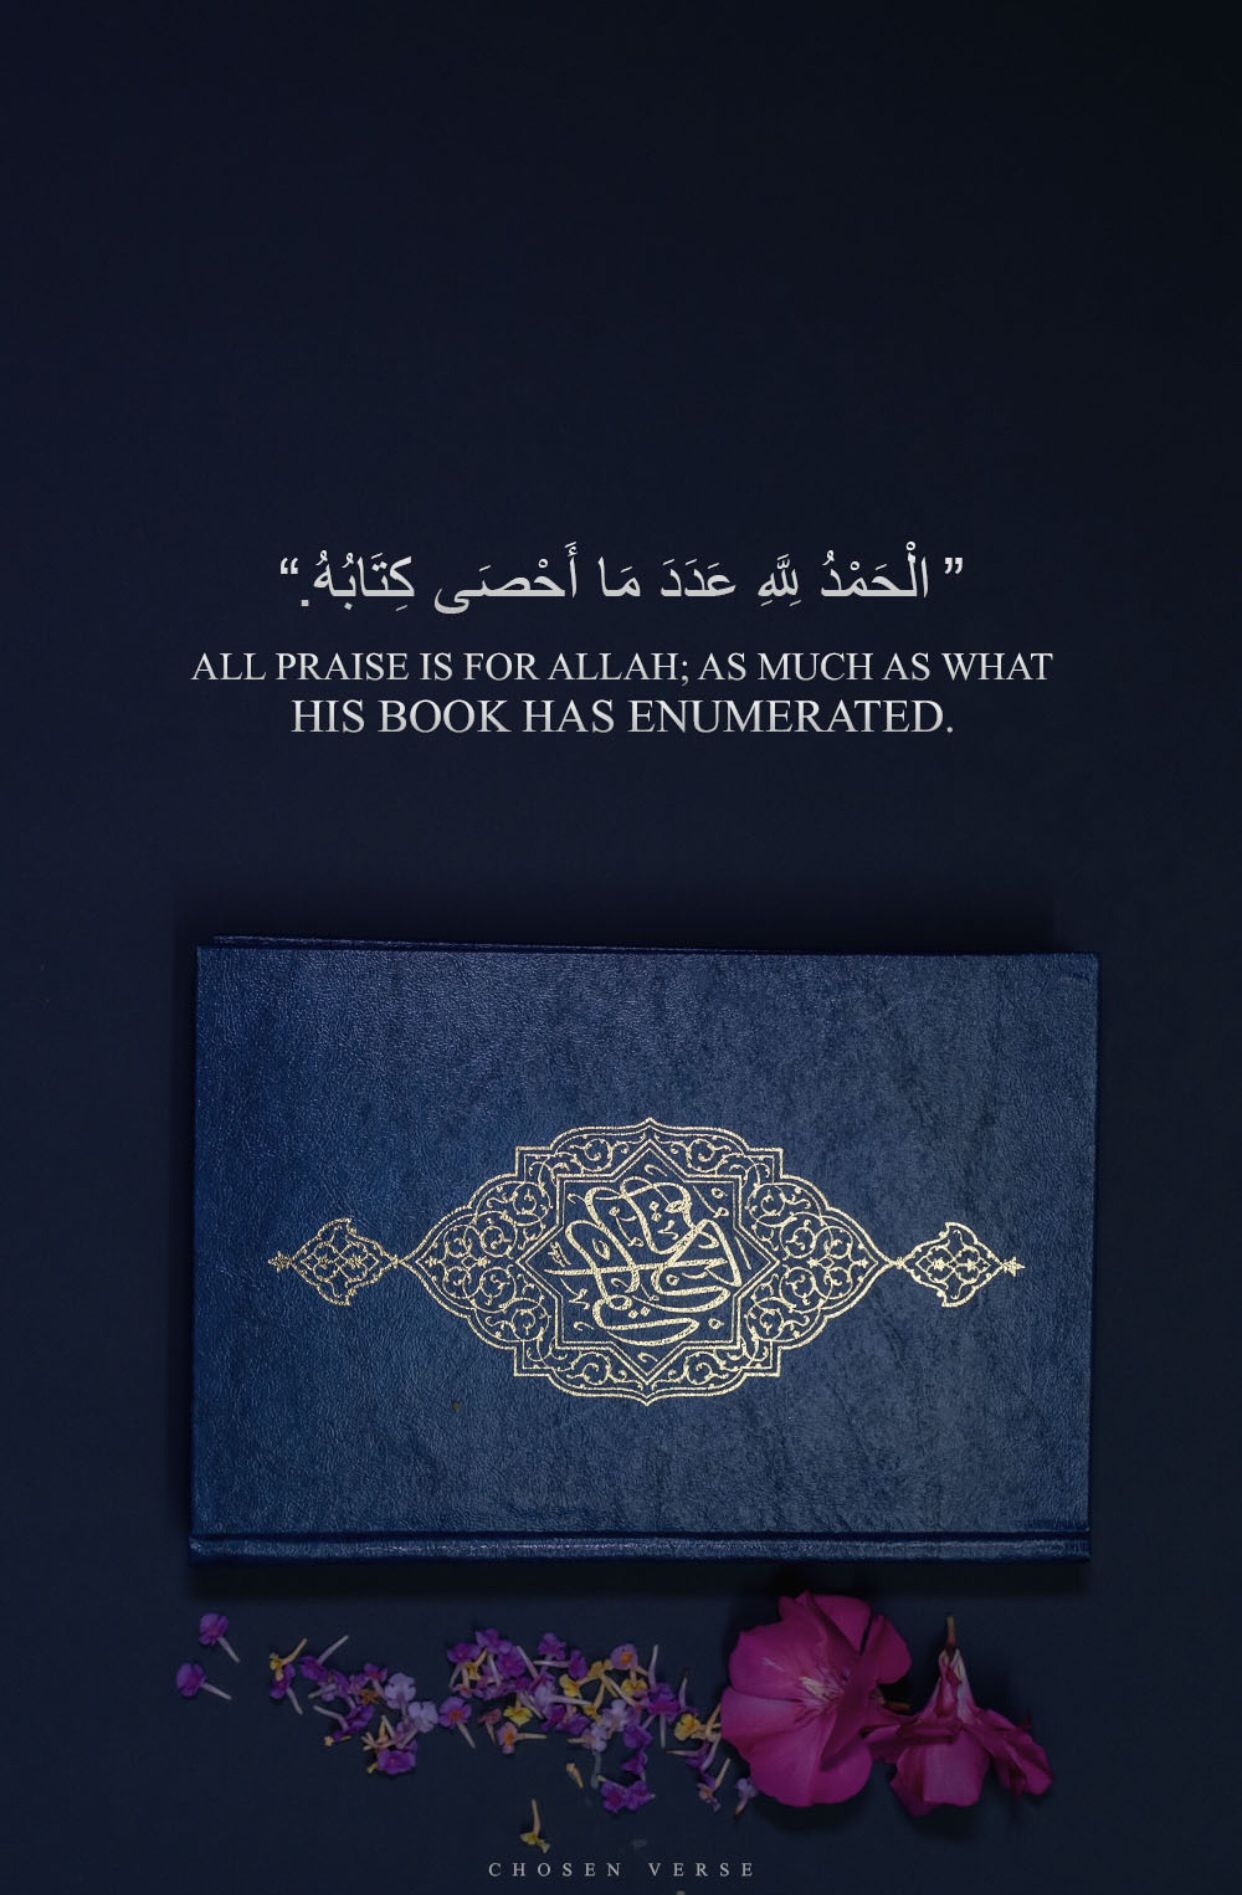 Pin By Chelsea Shaquil On Quran Verses Islamic Quotes Quran Quotes Verses Islam Quran Best Islamic Quotes